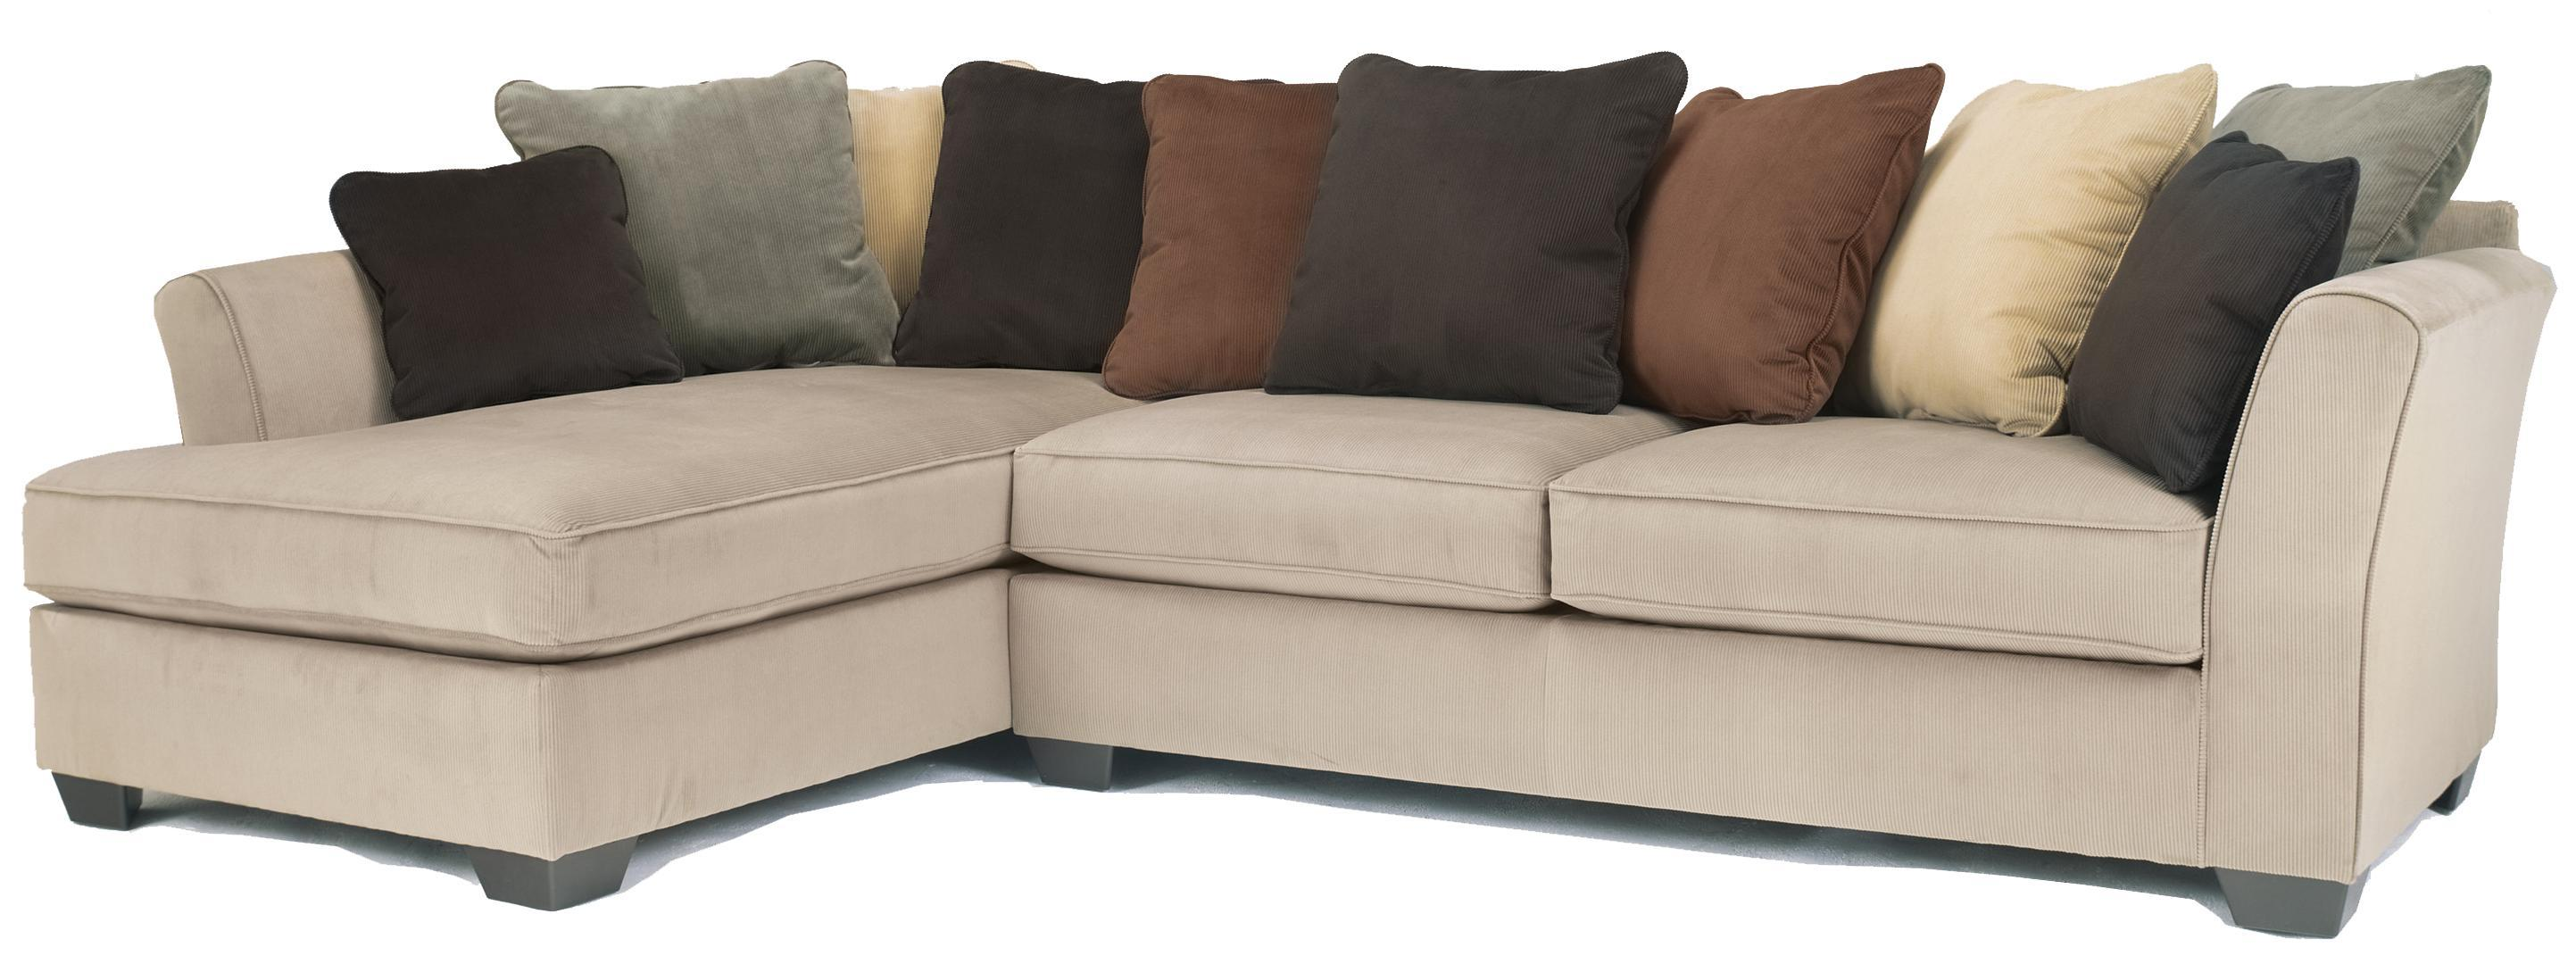 Laken 2 piece mocha sectional with left chaise from for 2 piece sectional sofa ashley